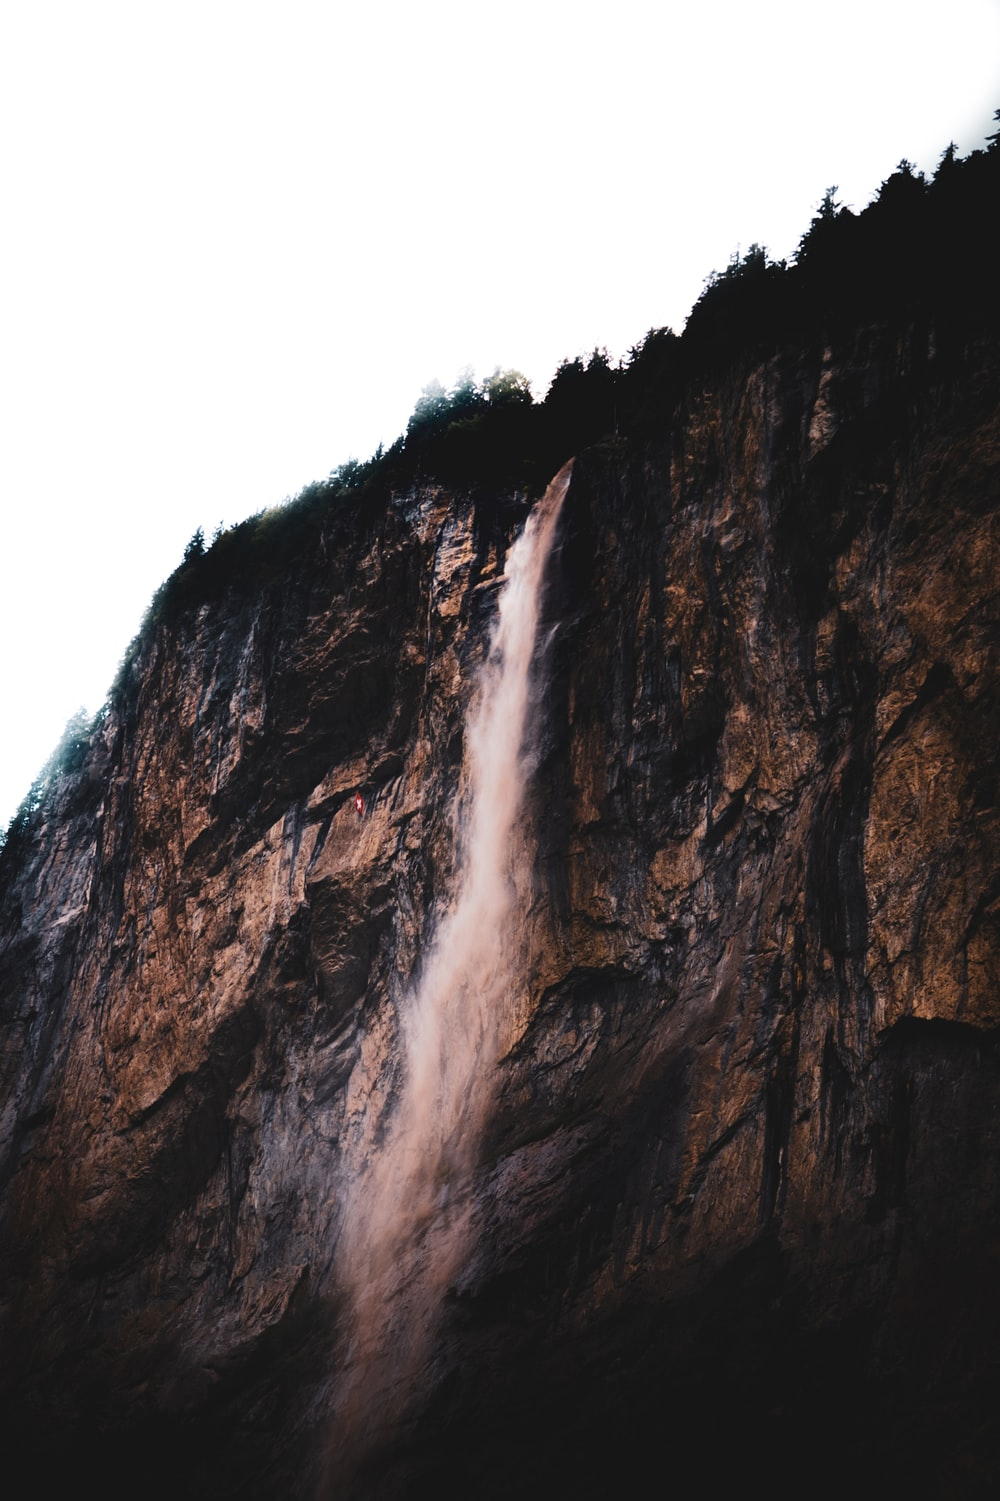 brown rocky mountain with waterfalls